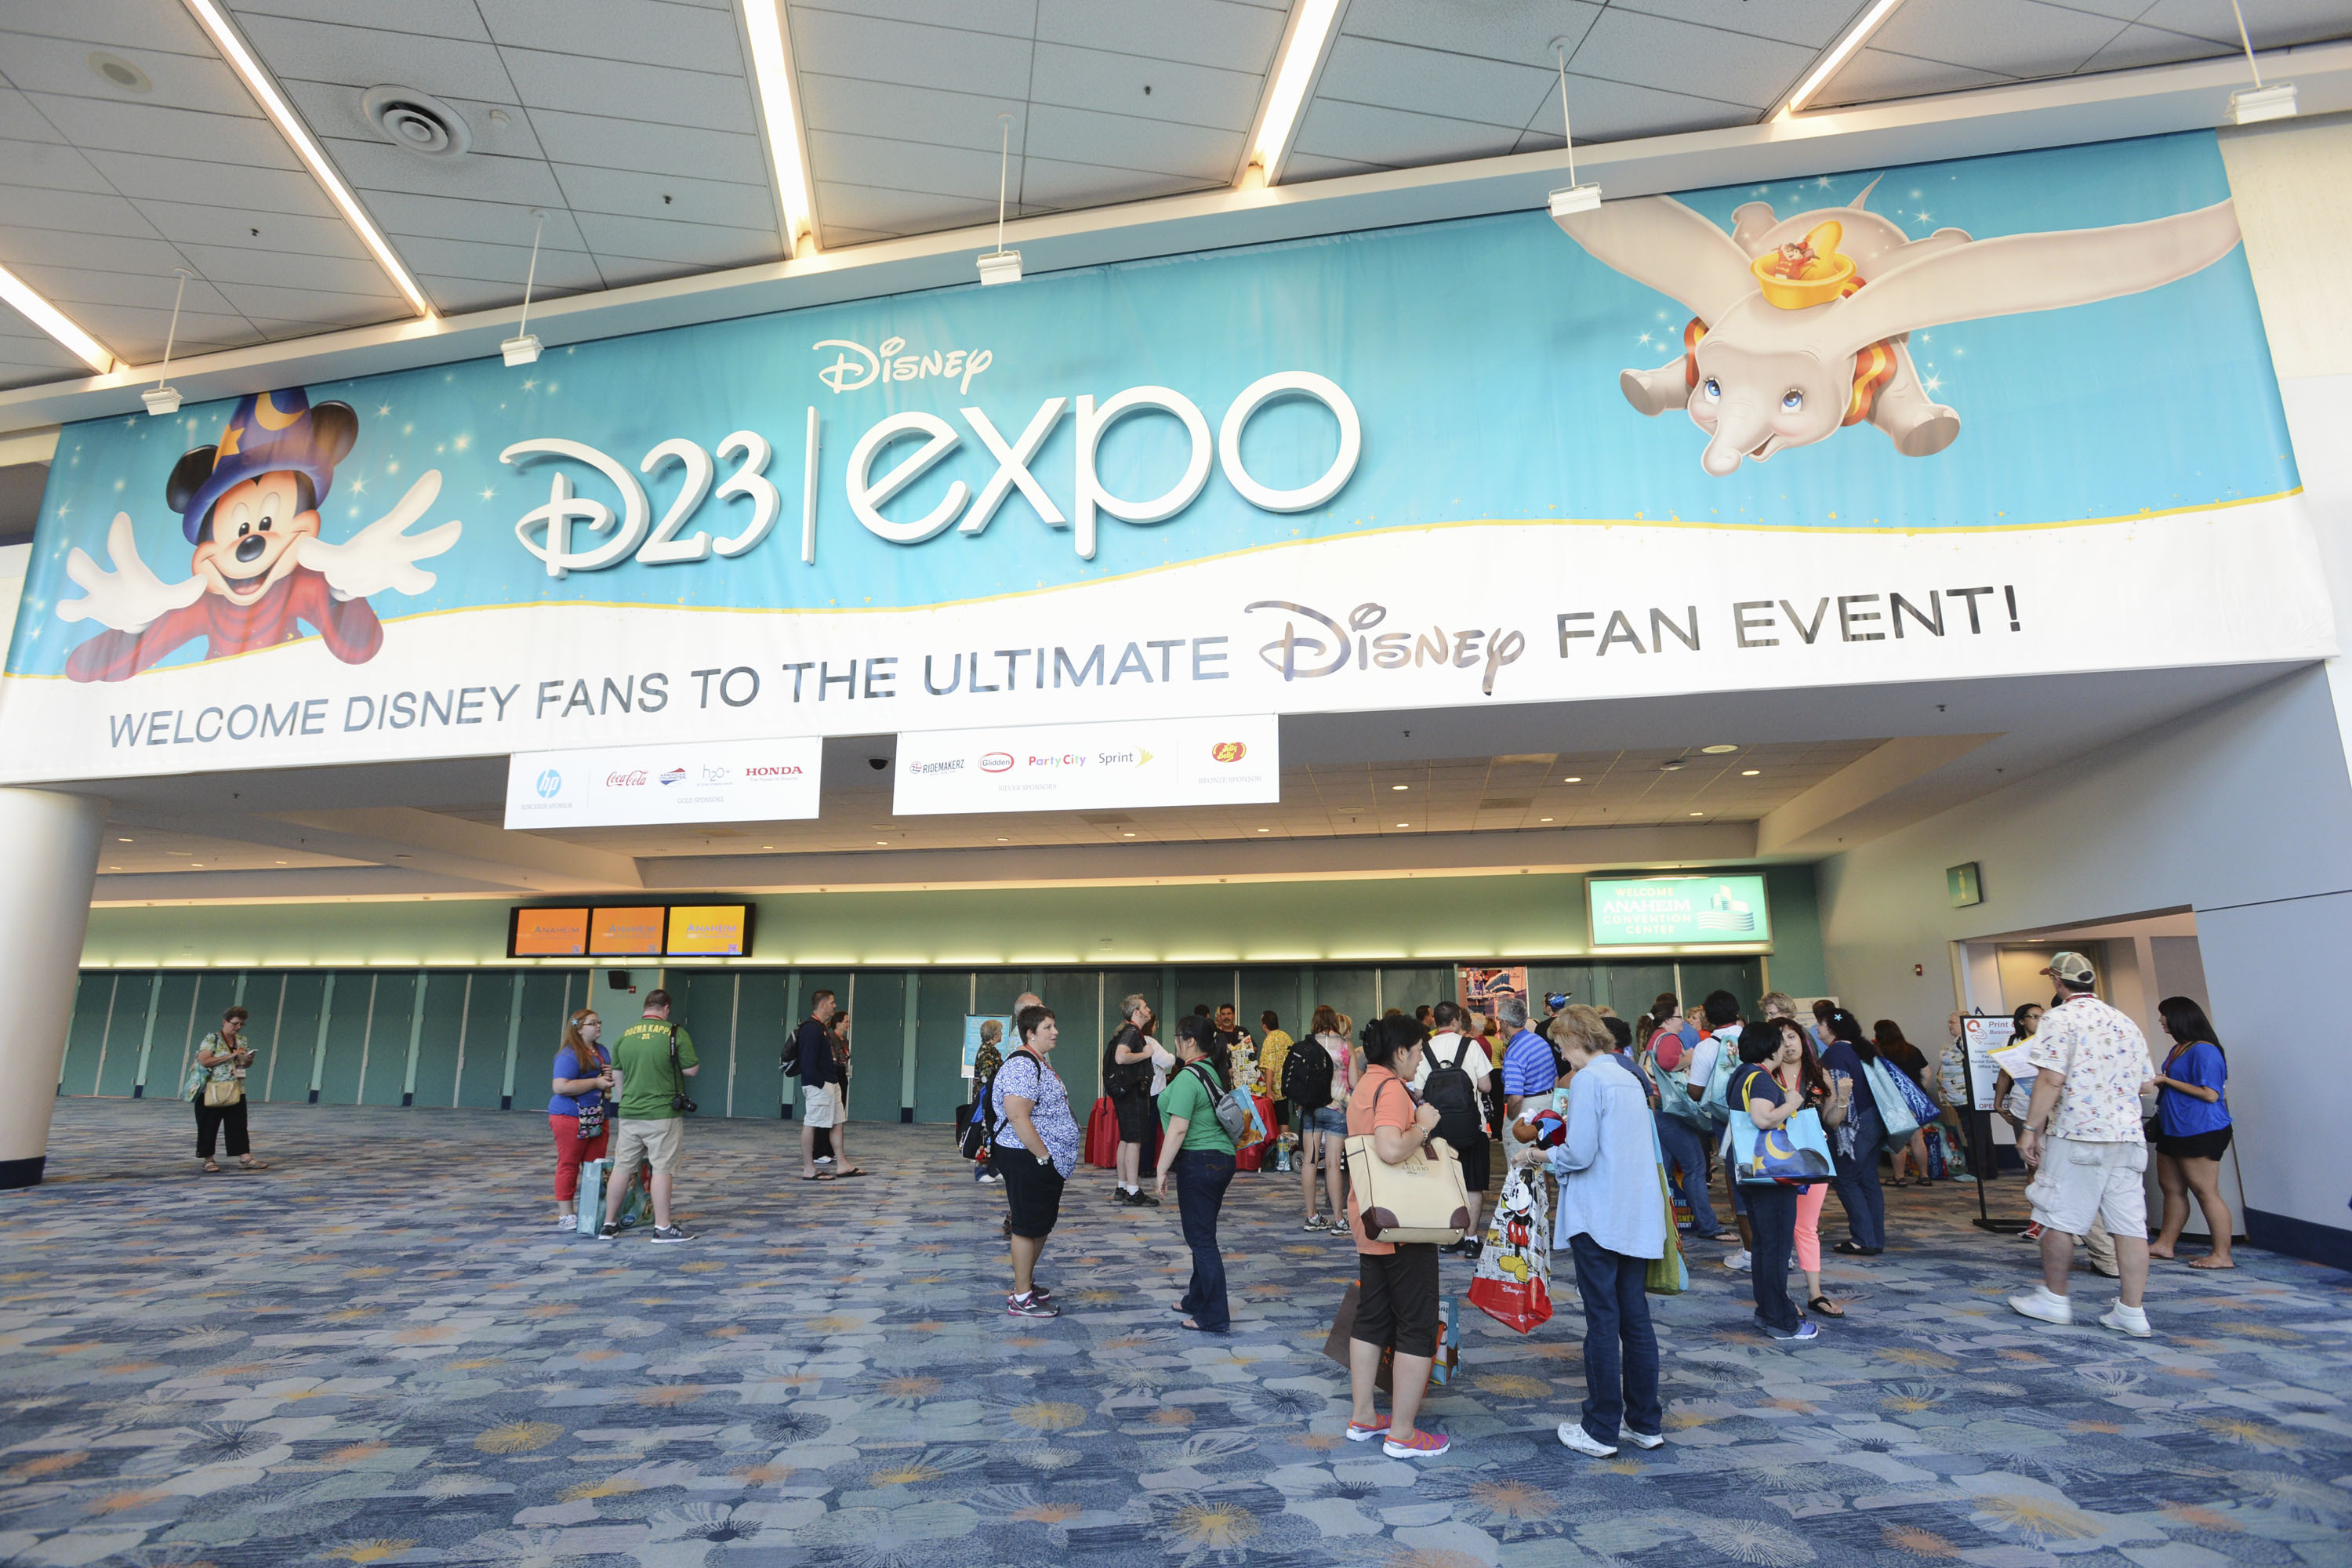 D23 expo level up!